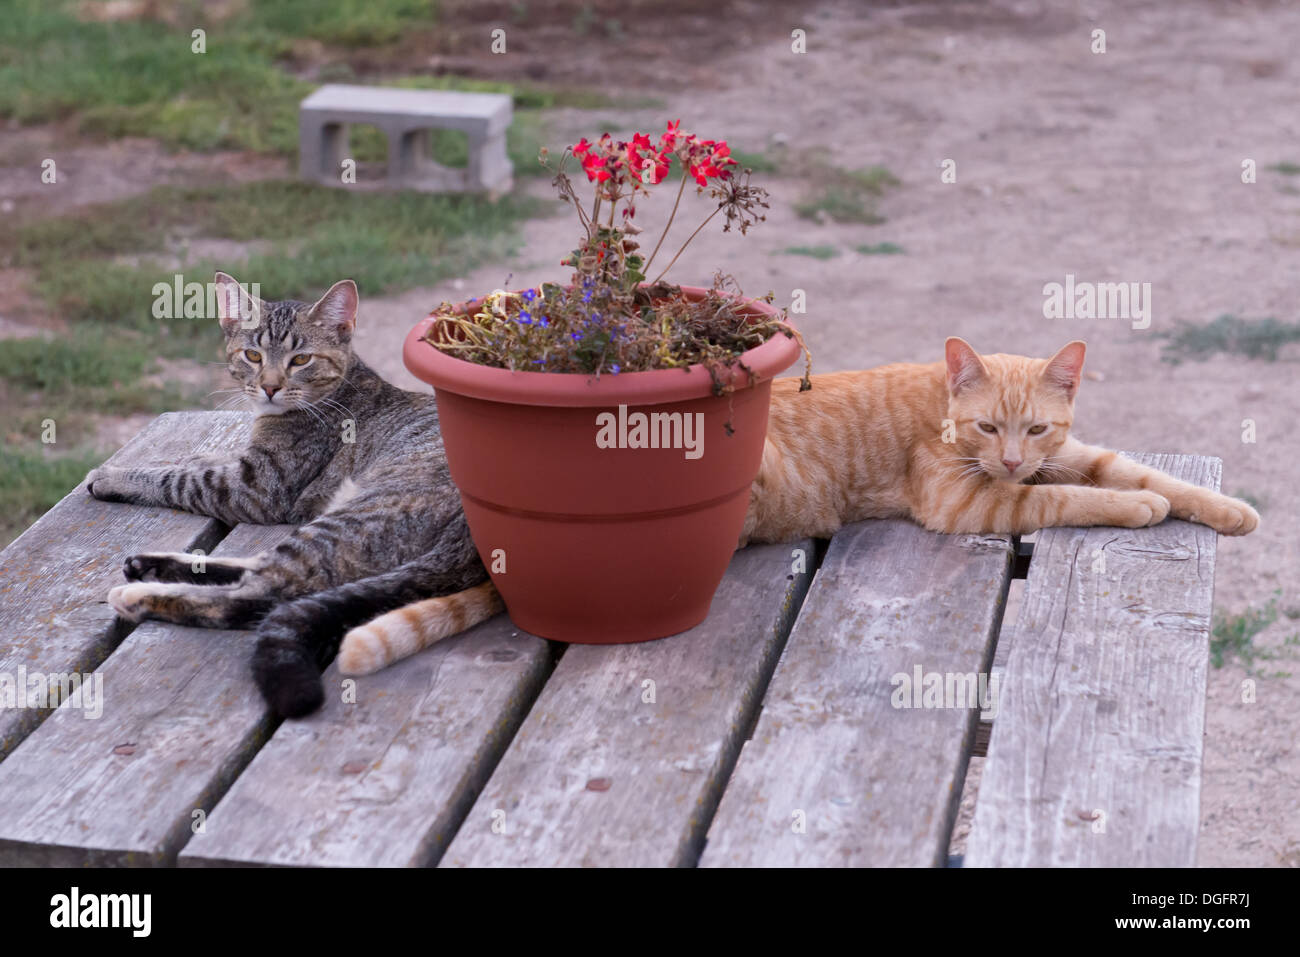 Two cats relaxing on a table Stock Photo